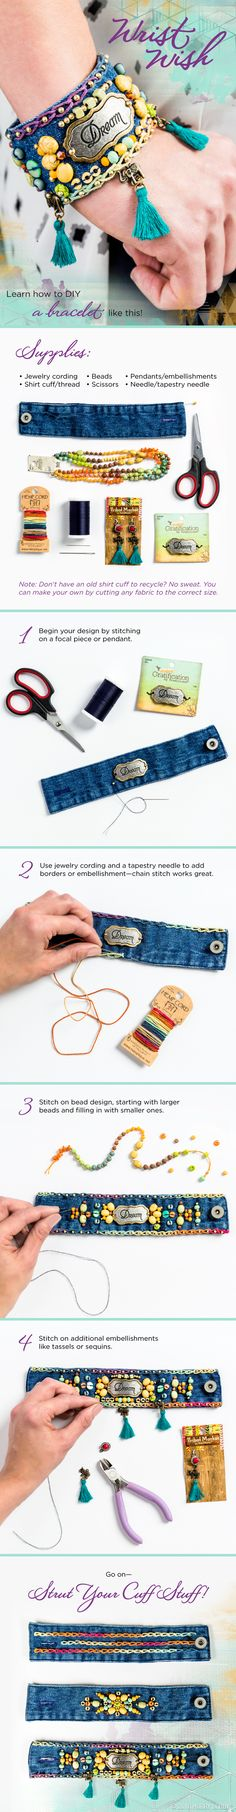 Focal Pendant Learn how to DIY this boho jean cuff bracelet!Learn how to DIY this boho jean cuff bracelet! Textile Jewelry, Fabric Jewelry, Boho Jewelry, Jewelry Crafts, Handmade Jewelry, Jewellery, Denim Bracelet, Fabric Bracelets, Cuff Bracelets